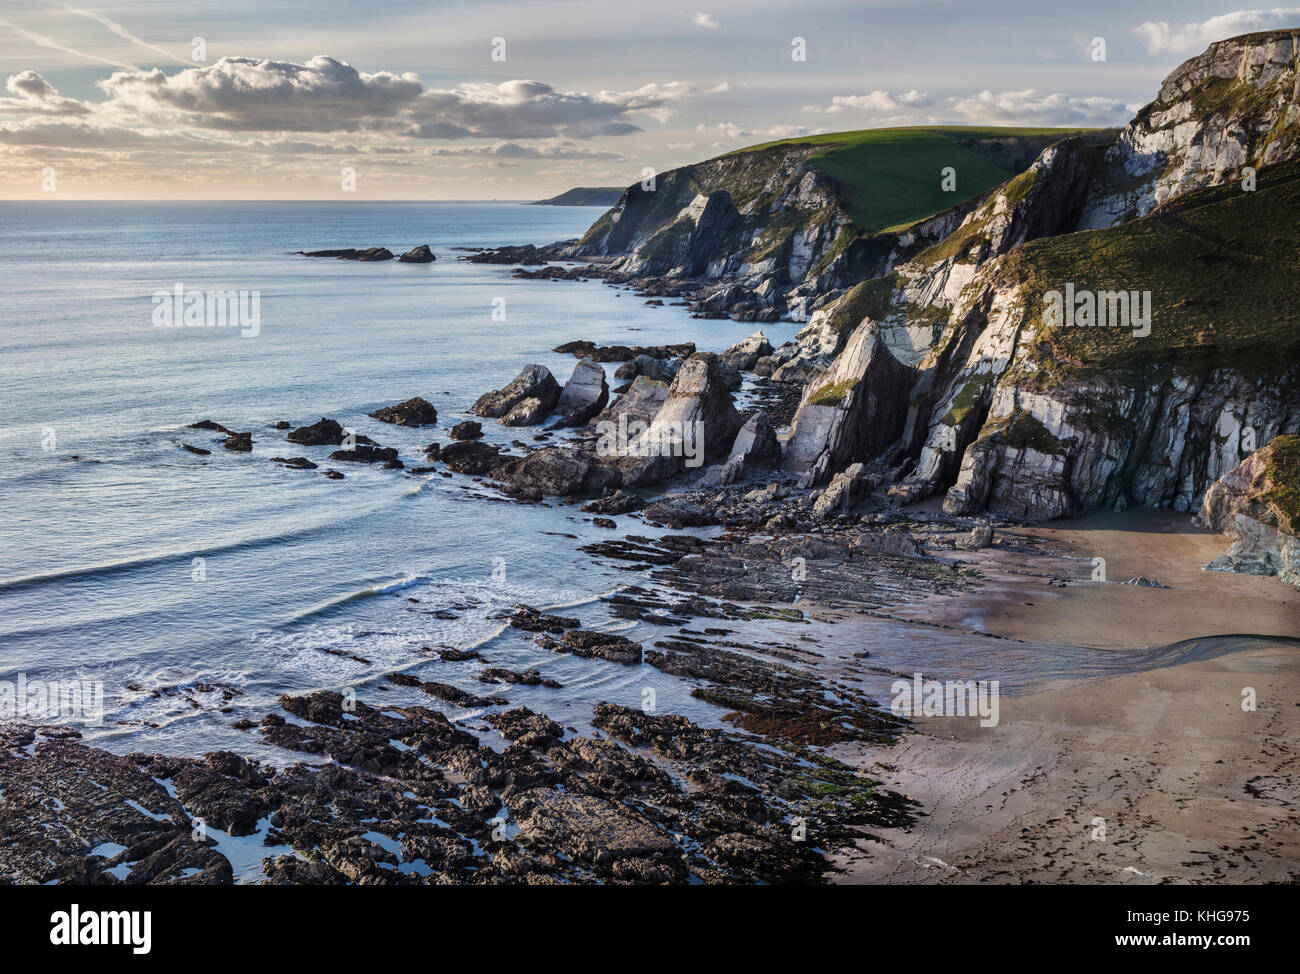 View of Westcombe Bay from the South West Coastal Path on the South Hams coast of Devon - Stock Image